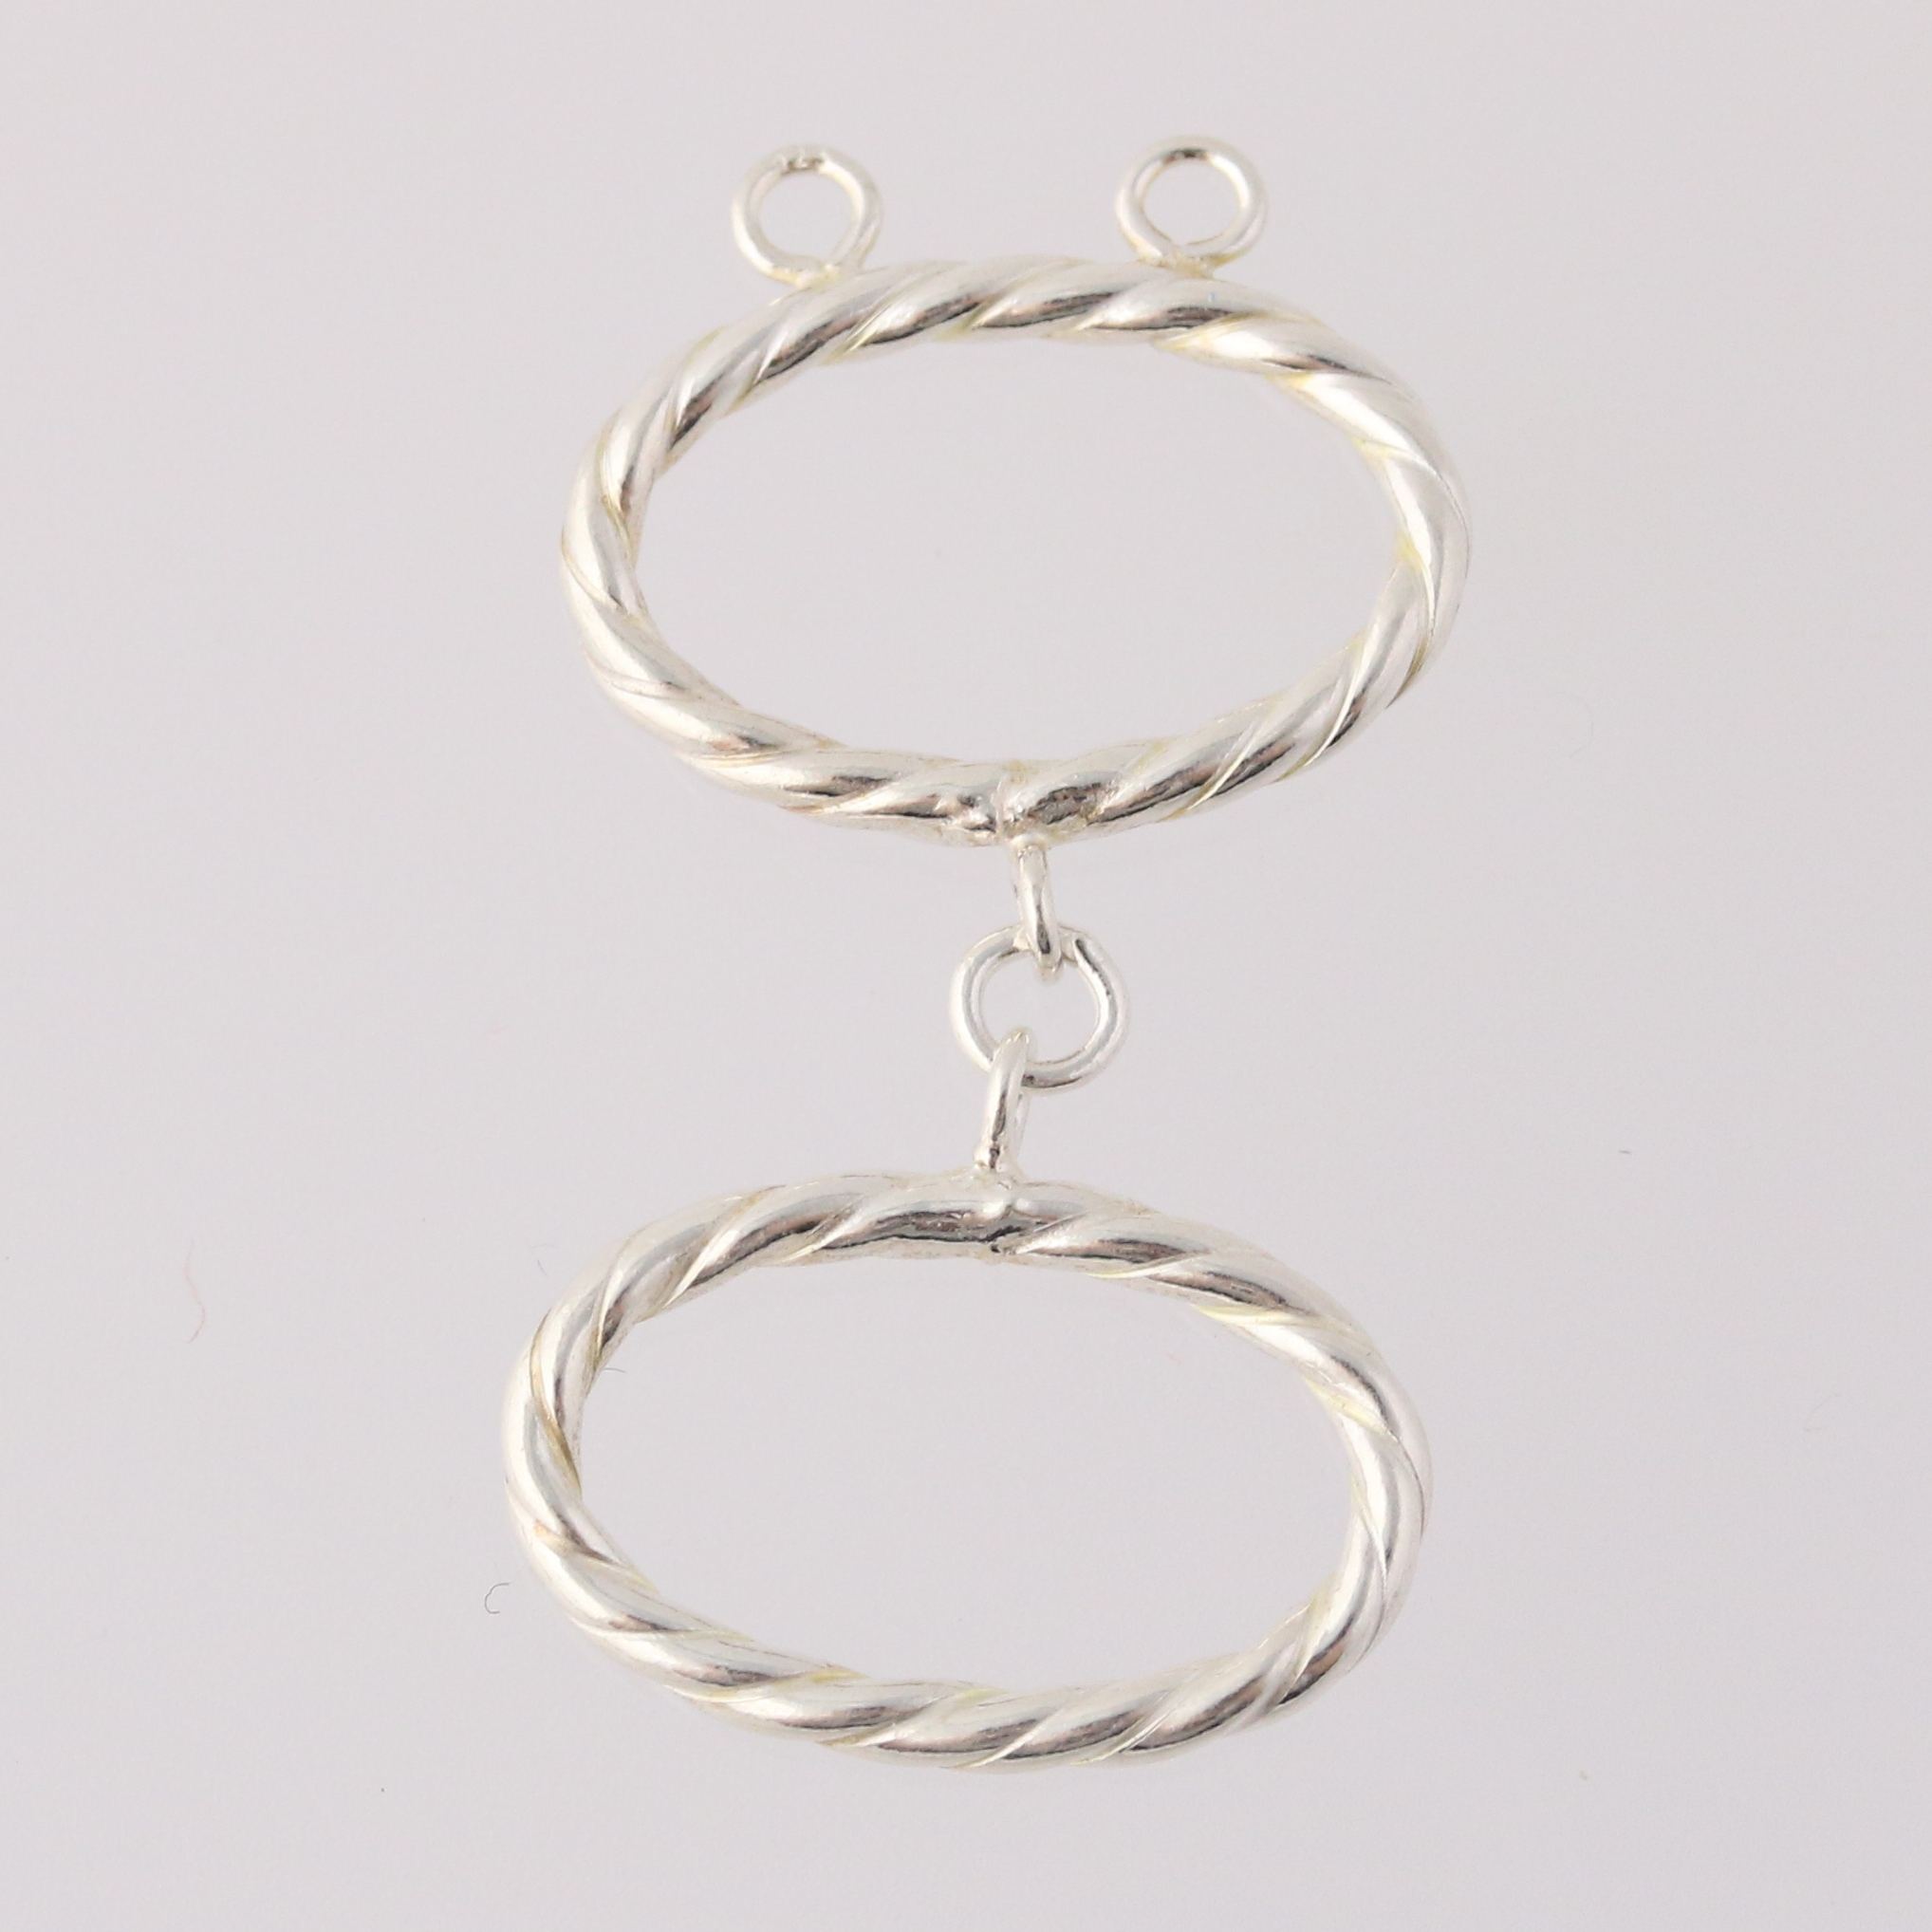 ring toggle clasp sterling silver 925 findings jewelry